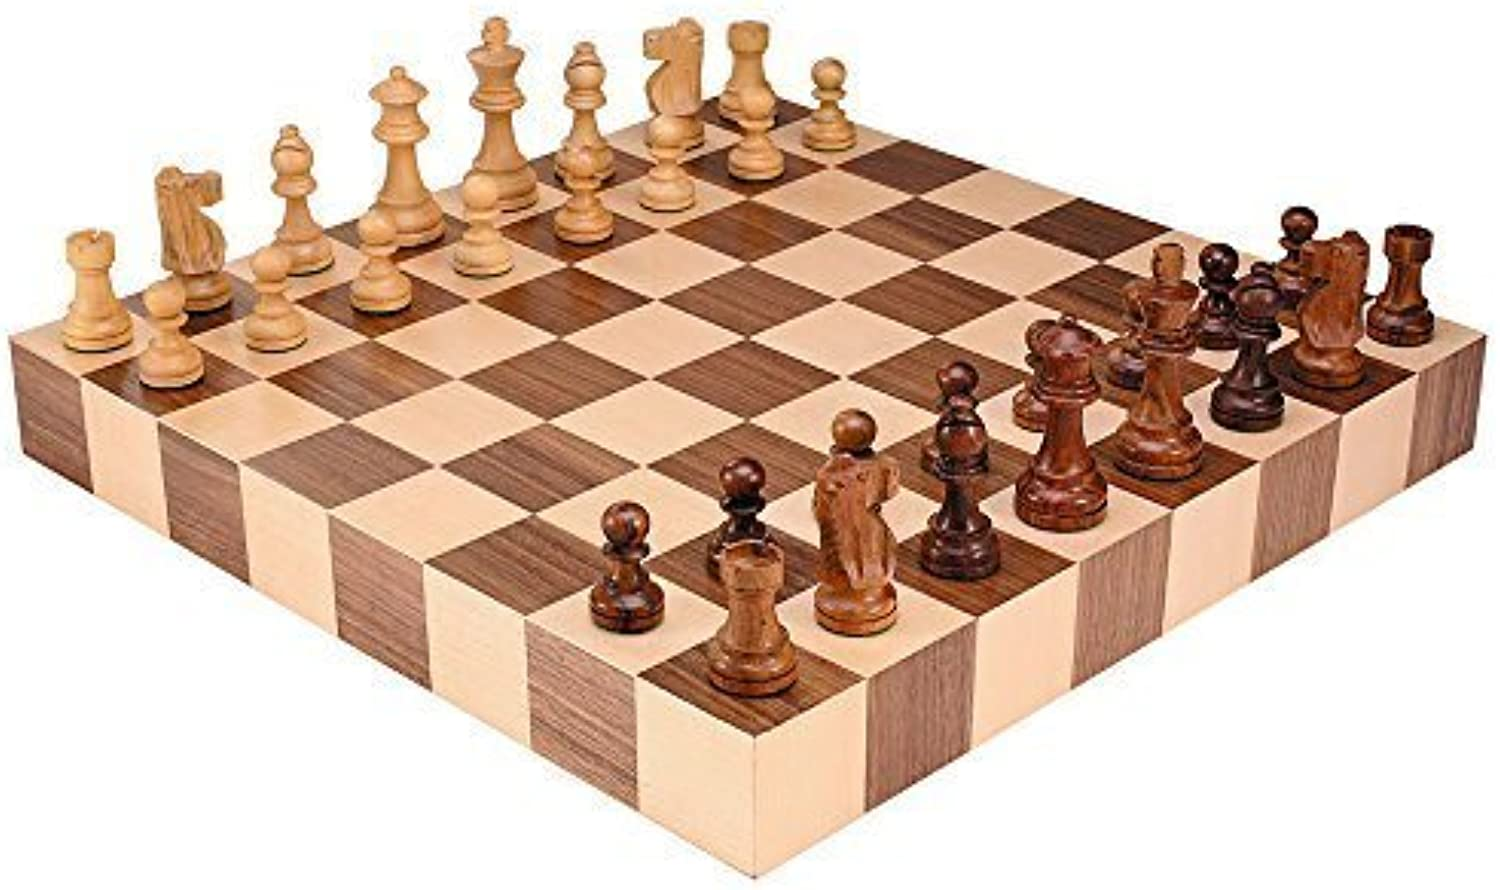 Athena Tournament Chess Inlaid Wood Board Game with High Quality Weighted Wooden Pieces - 18 Inch Set by Best Chess Set